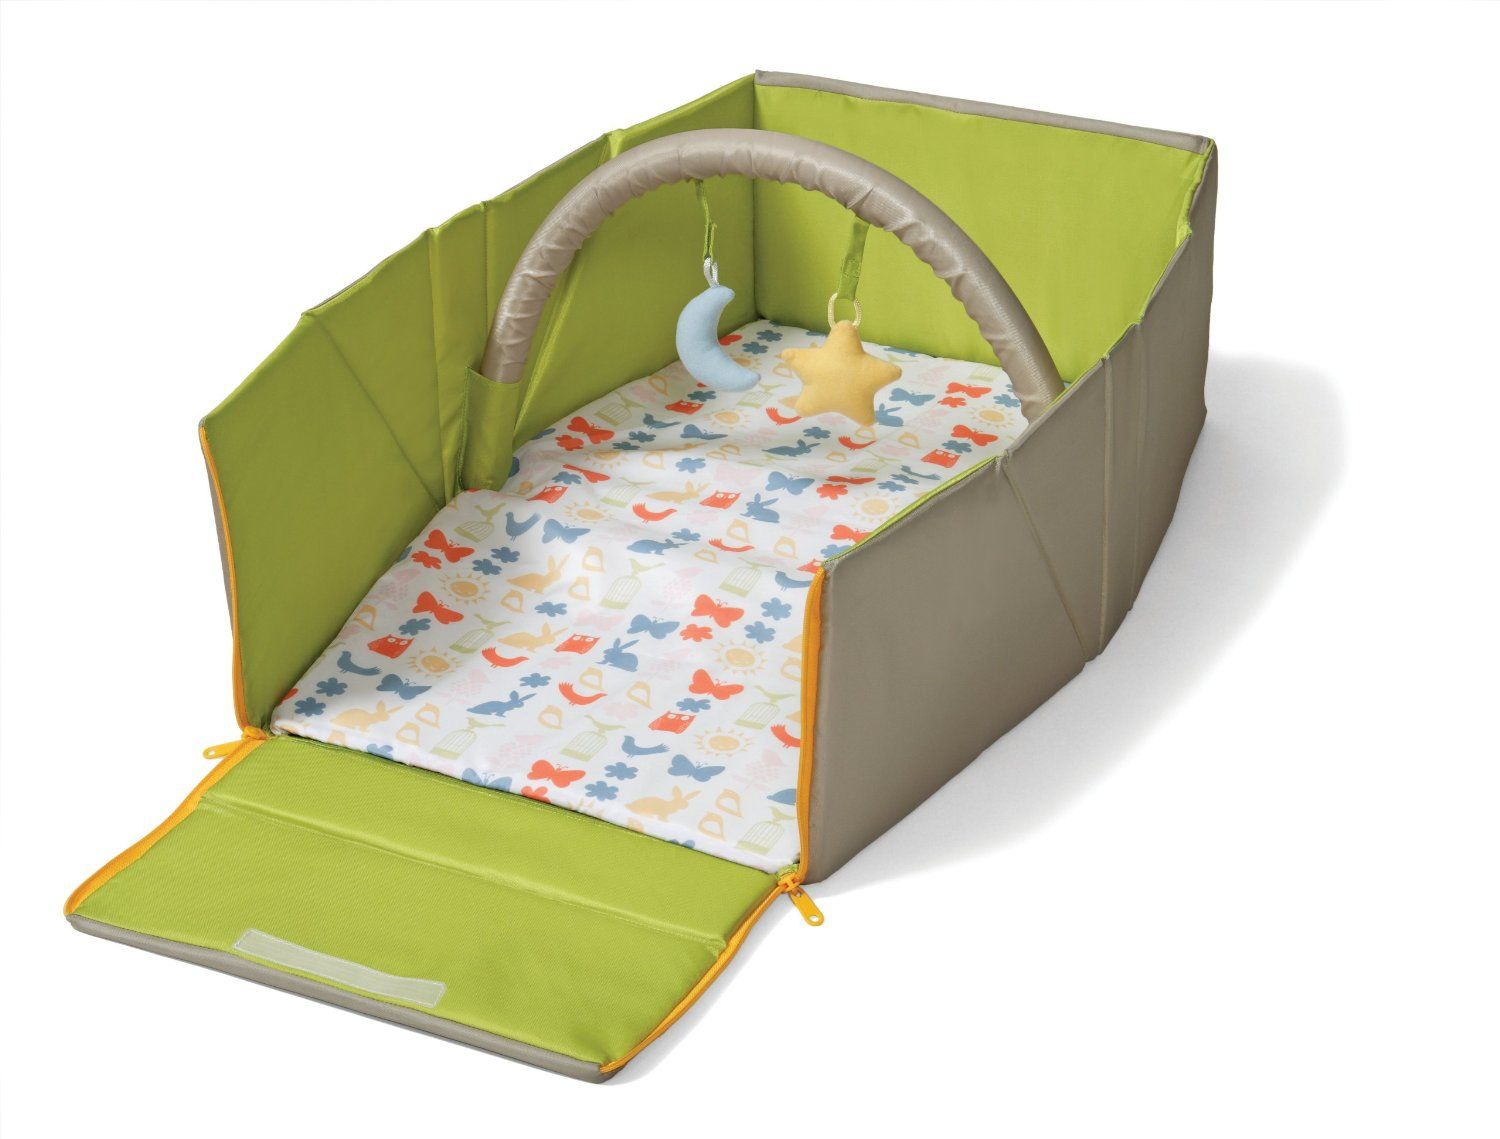 c42db8927 Amazon.com  Infantino Napnest Easy Fold Travel Bed  Baby